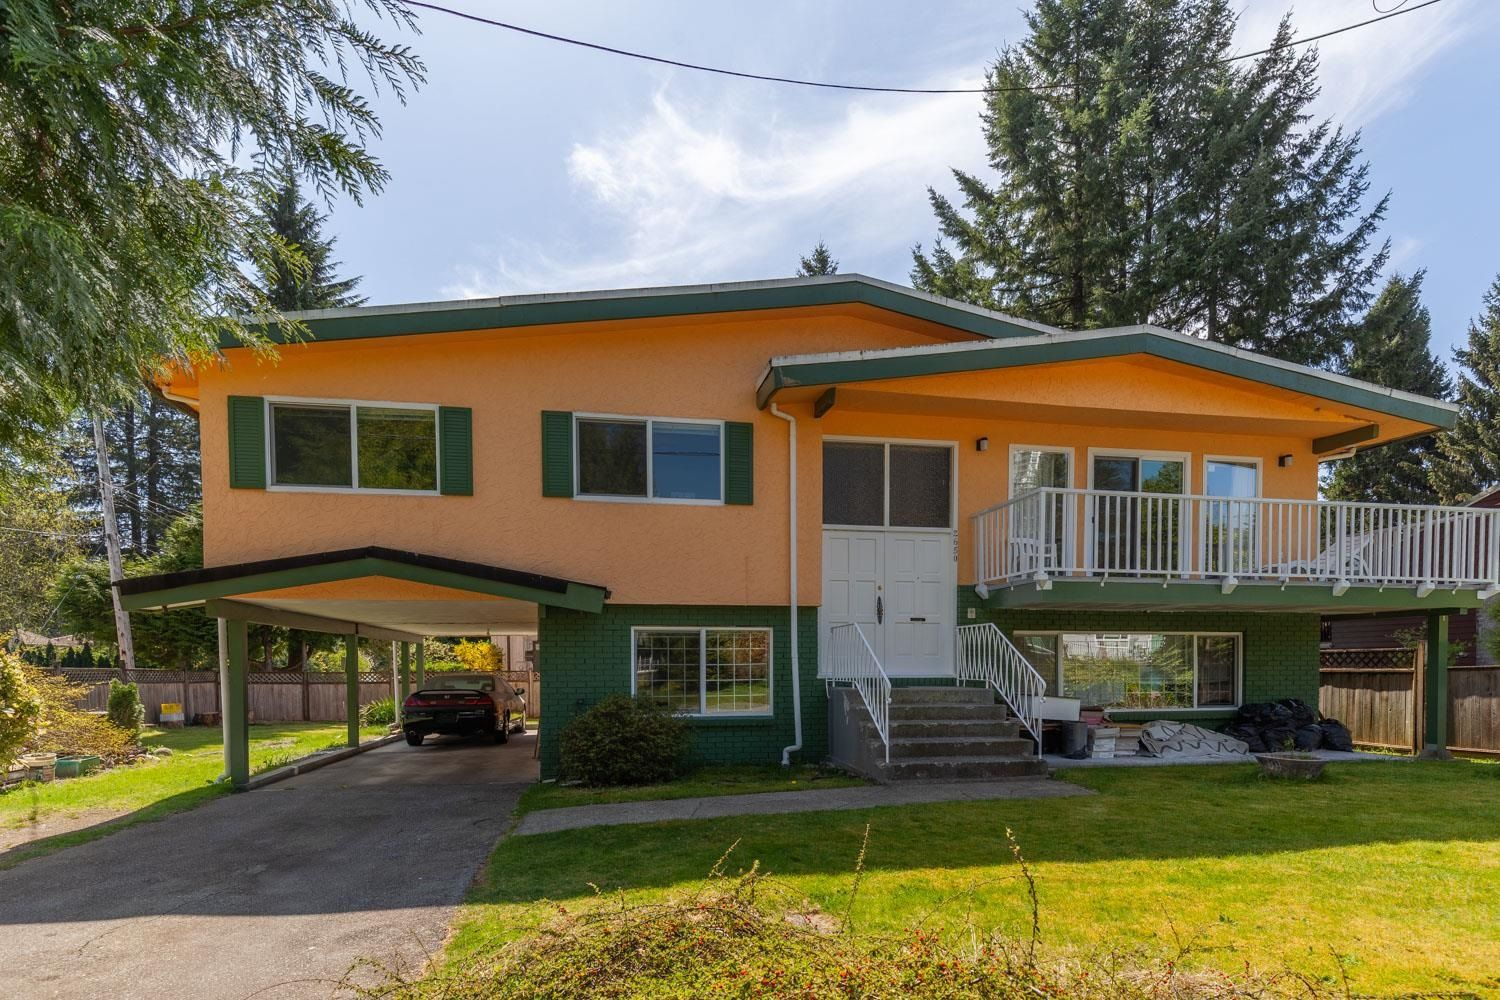 Main Photo: 2650 TUOHEY Avenue in Port Coquitlam: Woodland Acres PQ House for sale : MLS®# R2618666